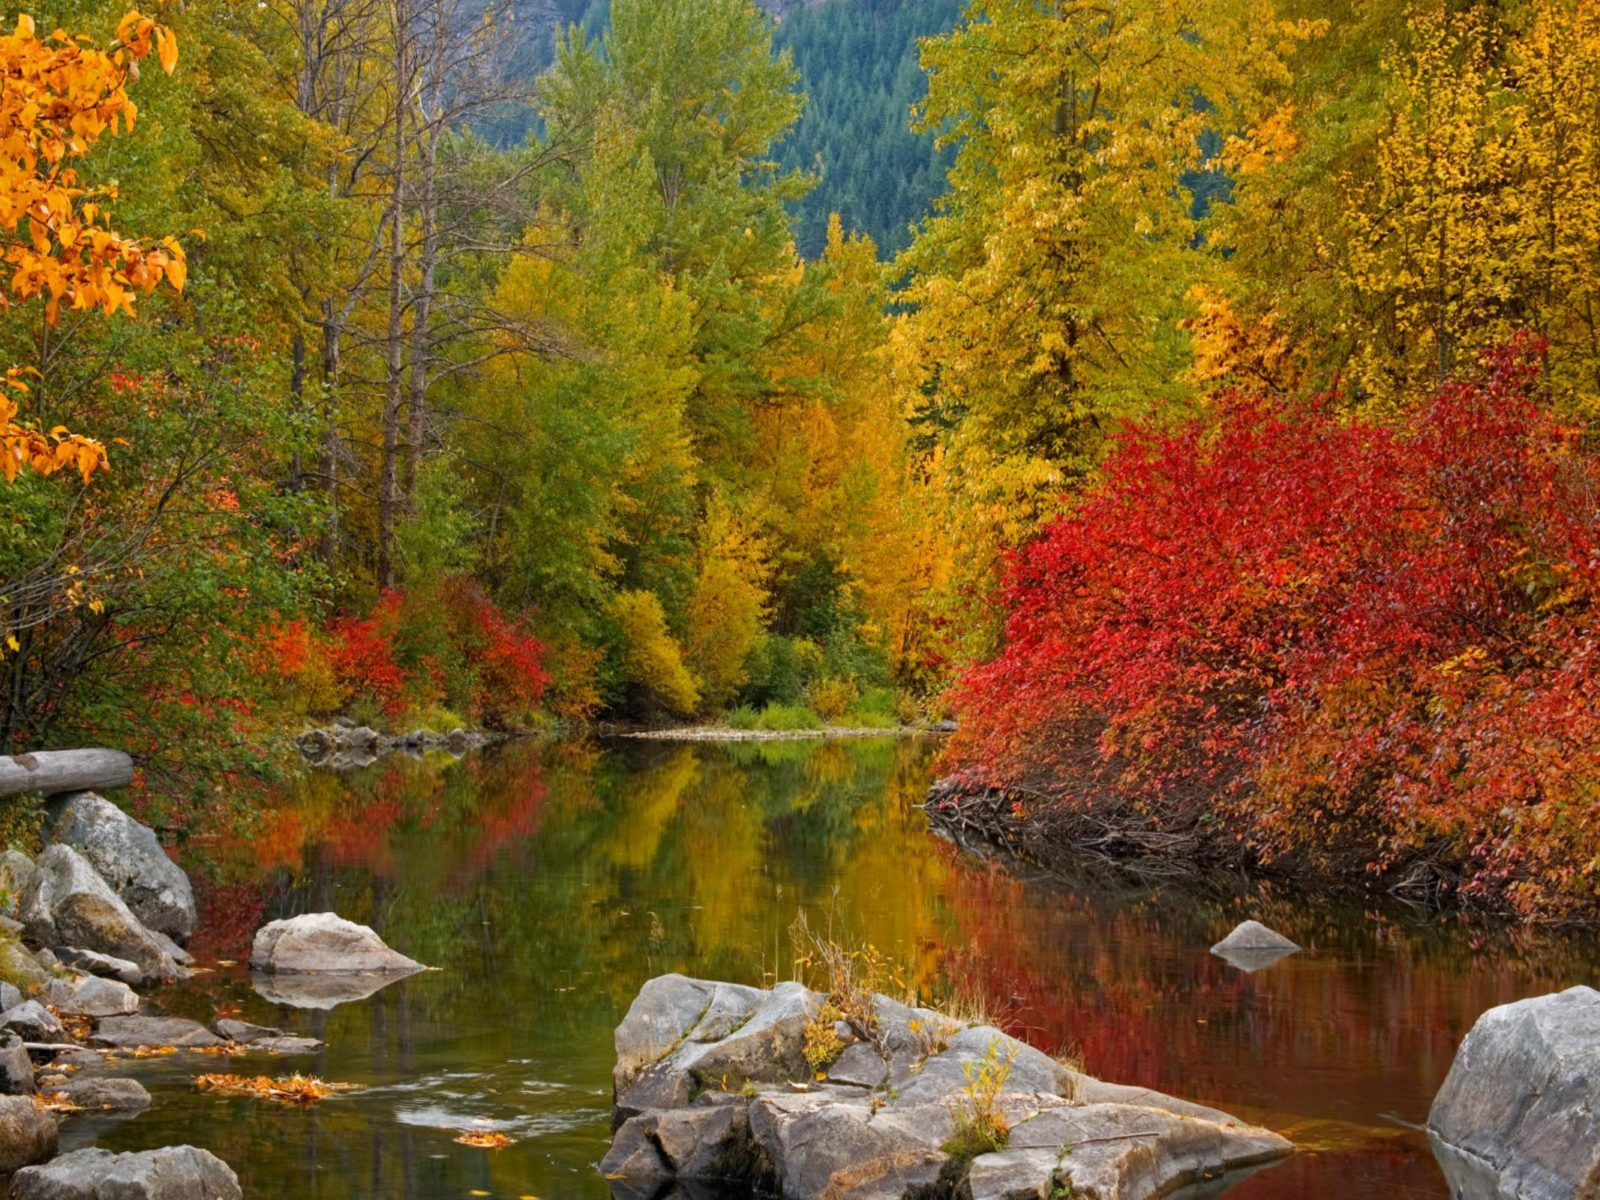 Hd Iphone Wallpapers Fall Fall Awesome Forest River Water Widescreen 2560x1600 Hd